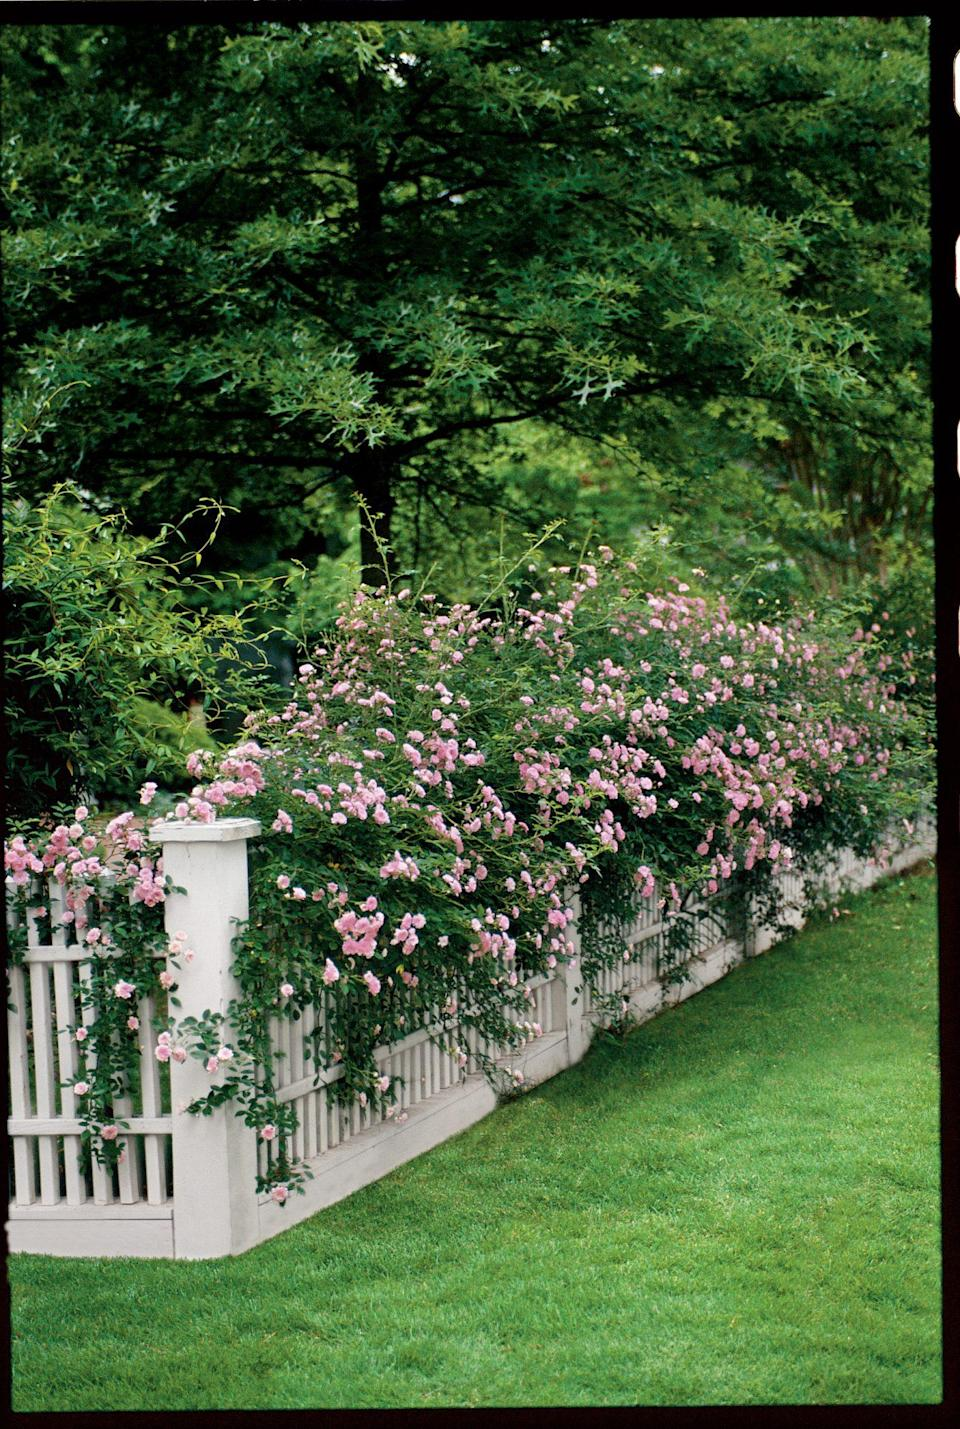 """<p>It doesn't matter what your architecture style is, every house can use <a href=""""https://www.southernliving.com/garden/flowers/climbing-roses"""" rel=""""nofollow noopener"""" target=""""_blank"""" data-ylk=""""slk:a little cottage charm"""" class=""""link rapid-noclick-resp"""">a little cottage charm</a>—and a climbing rose trailing around your mailbox is a surefire way to get it. If you want lots of flowers, choose either a 'New Dawn,' 'Cecile Brunner,' or 'Climbing Old Blush' variety. They'll bloom from spring through fall. If your mailbox receives sun all day long, a climbing rose will be relatively easy to grow and reward you with plenty of pretty blooms. </p>"""